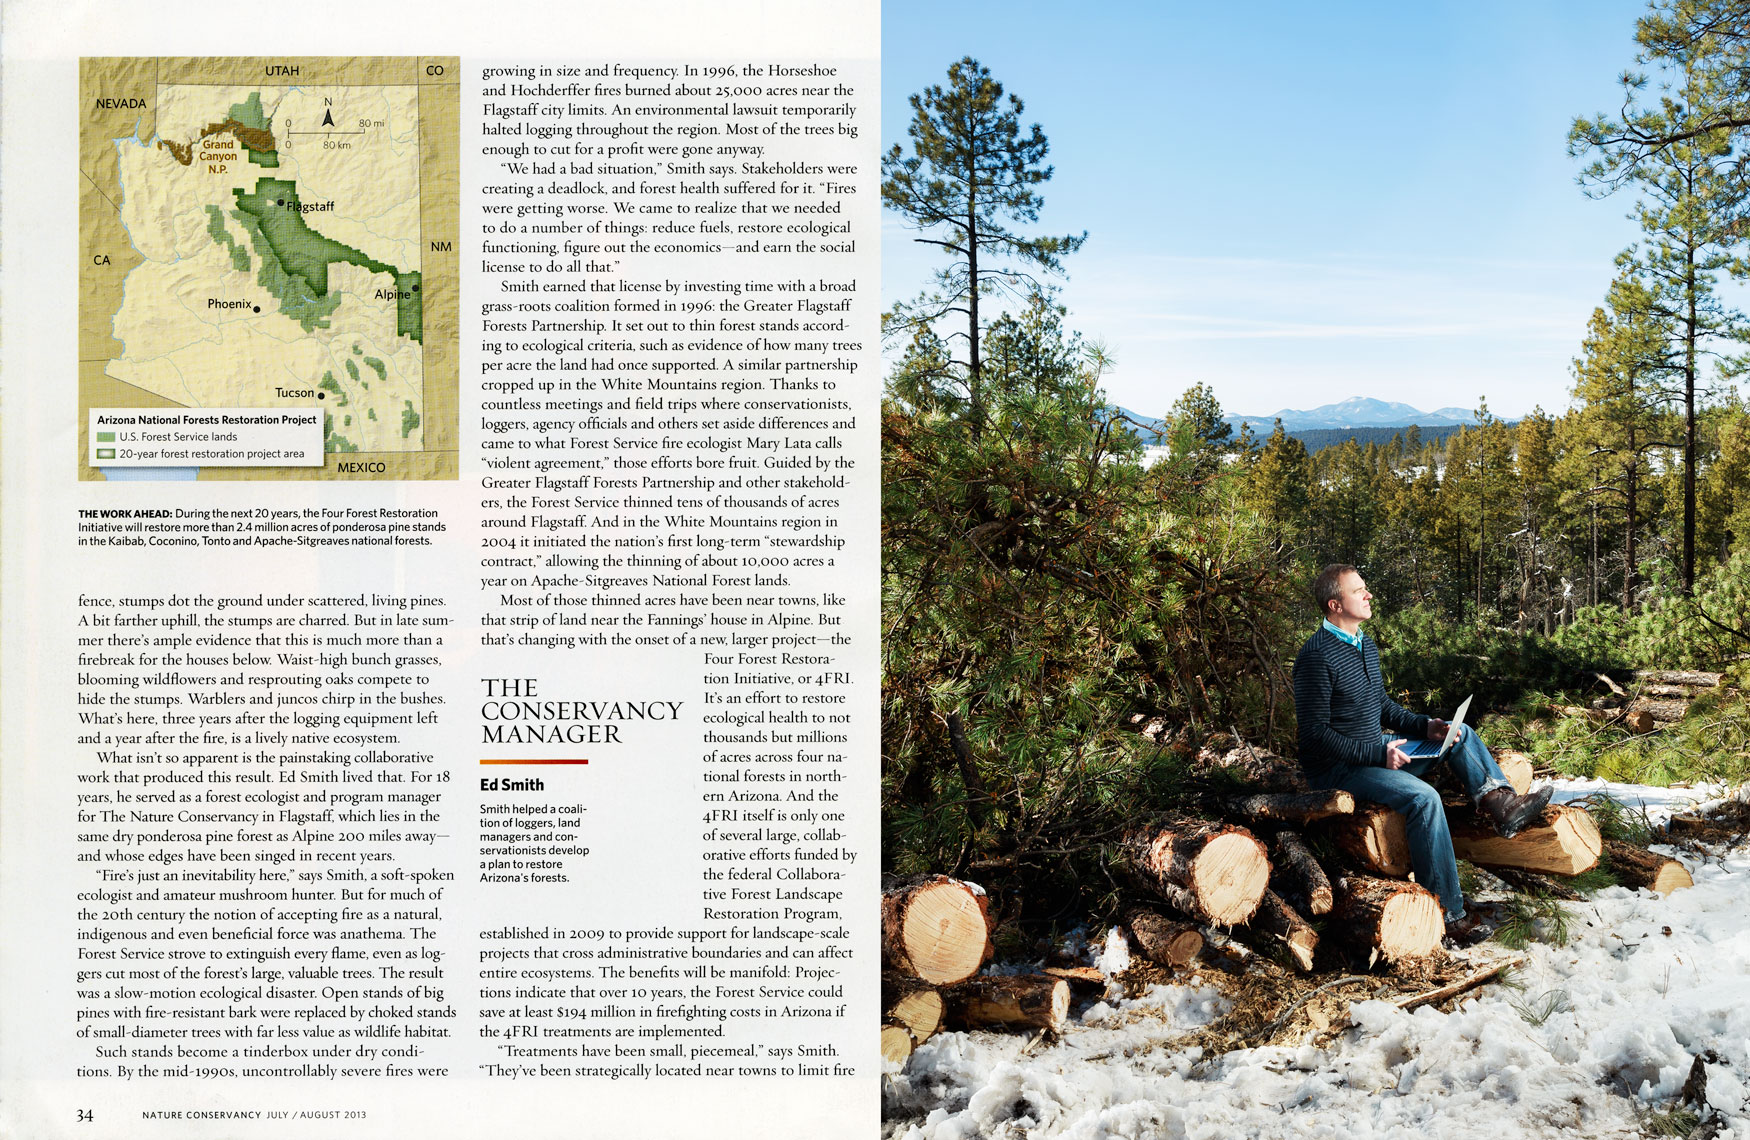 Nature Conservancy: The Conservancy Manager. SPREAD 2: ED SMITH